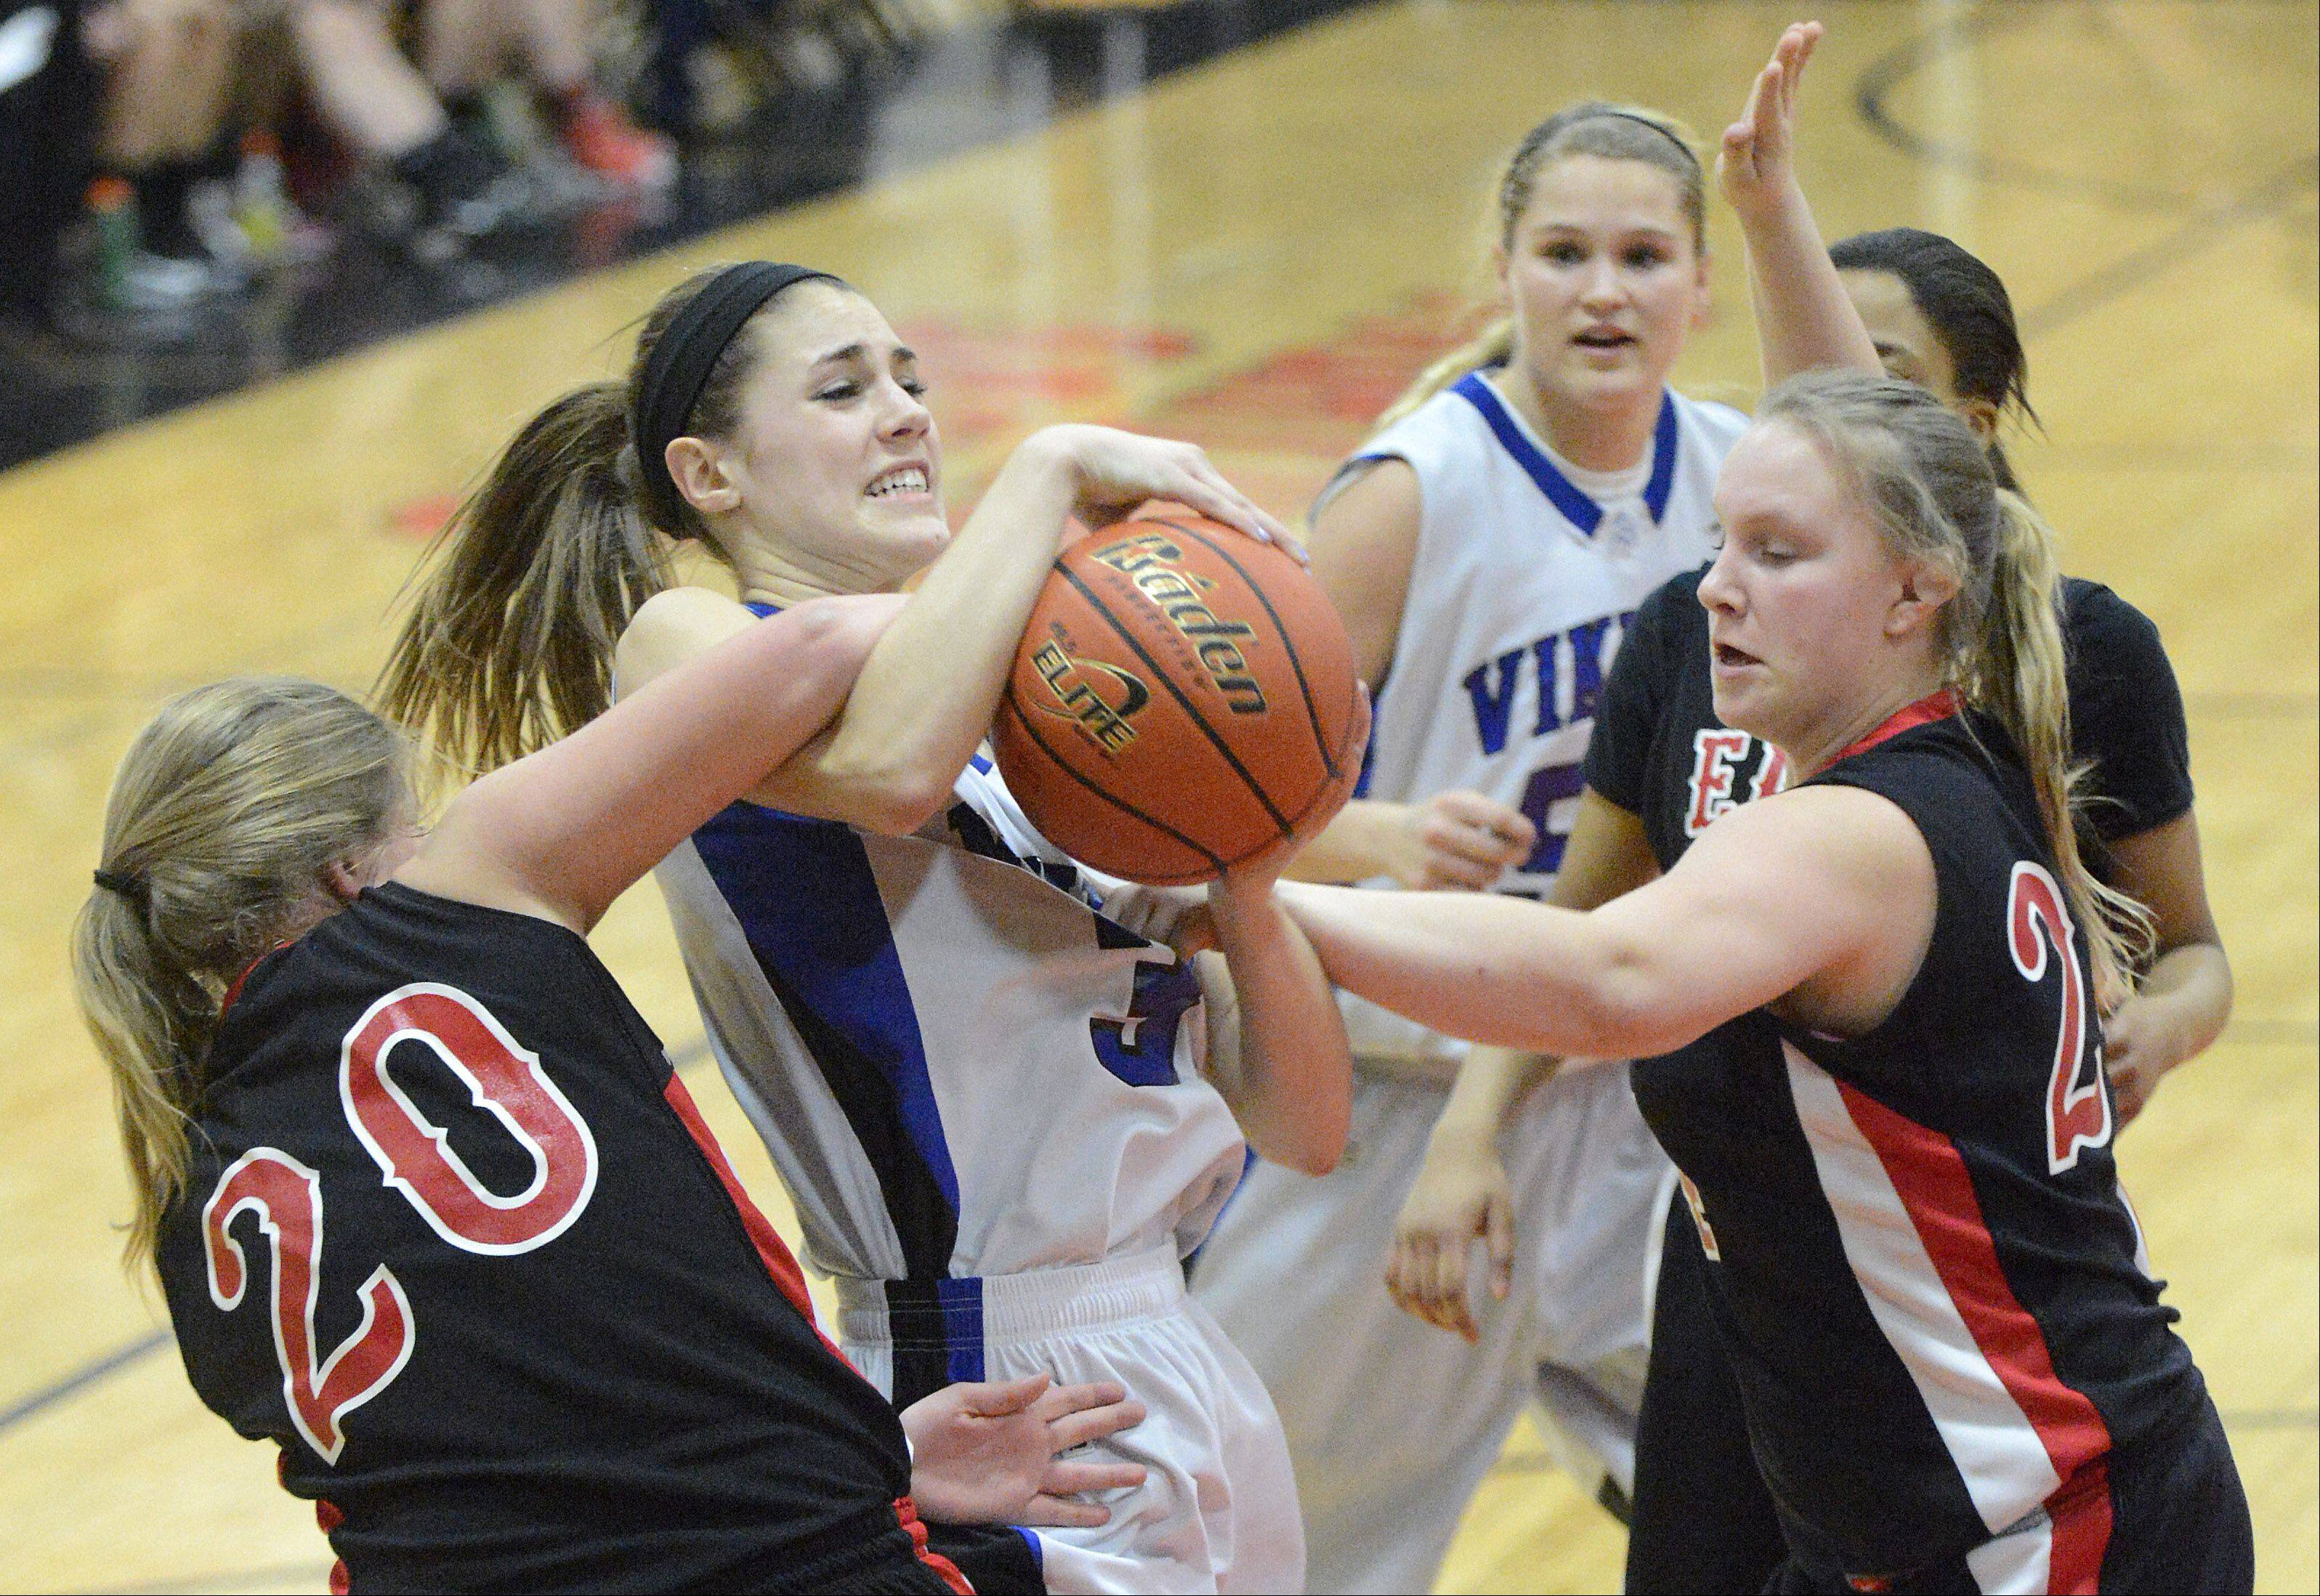 Glenbard East's Kara Tadda and Rachael Leifheit wrestle with Geneva's Madeline Dunn for a loose rebound in the third quarter.